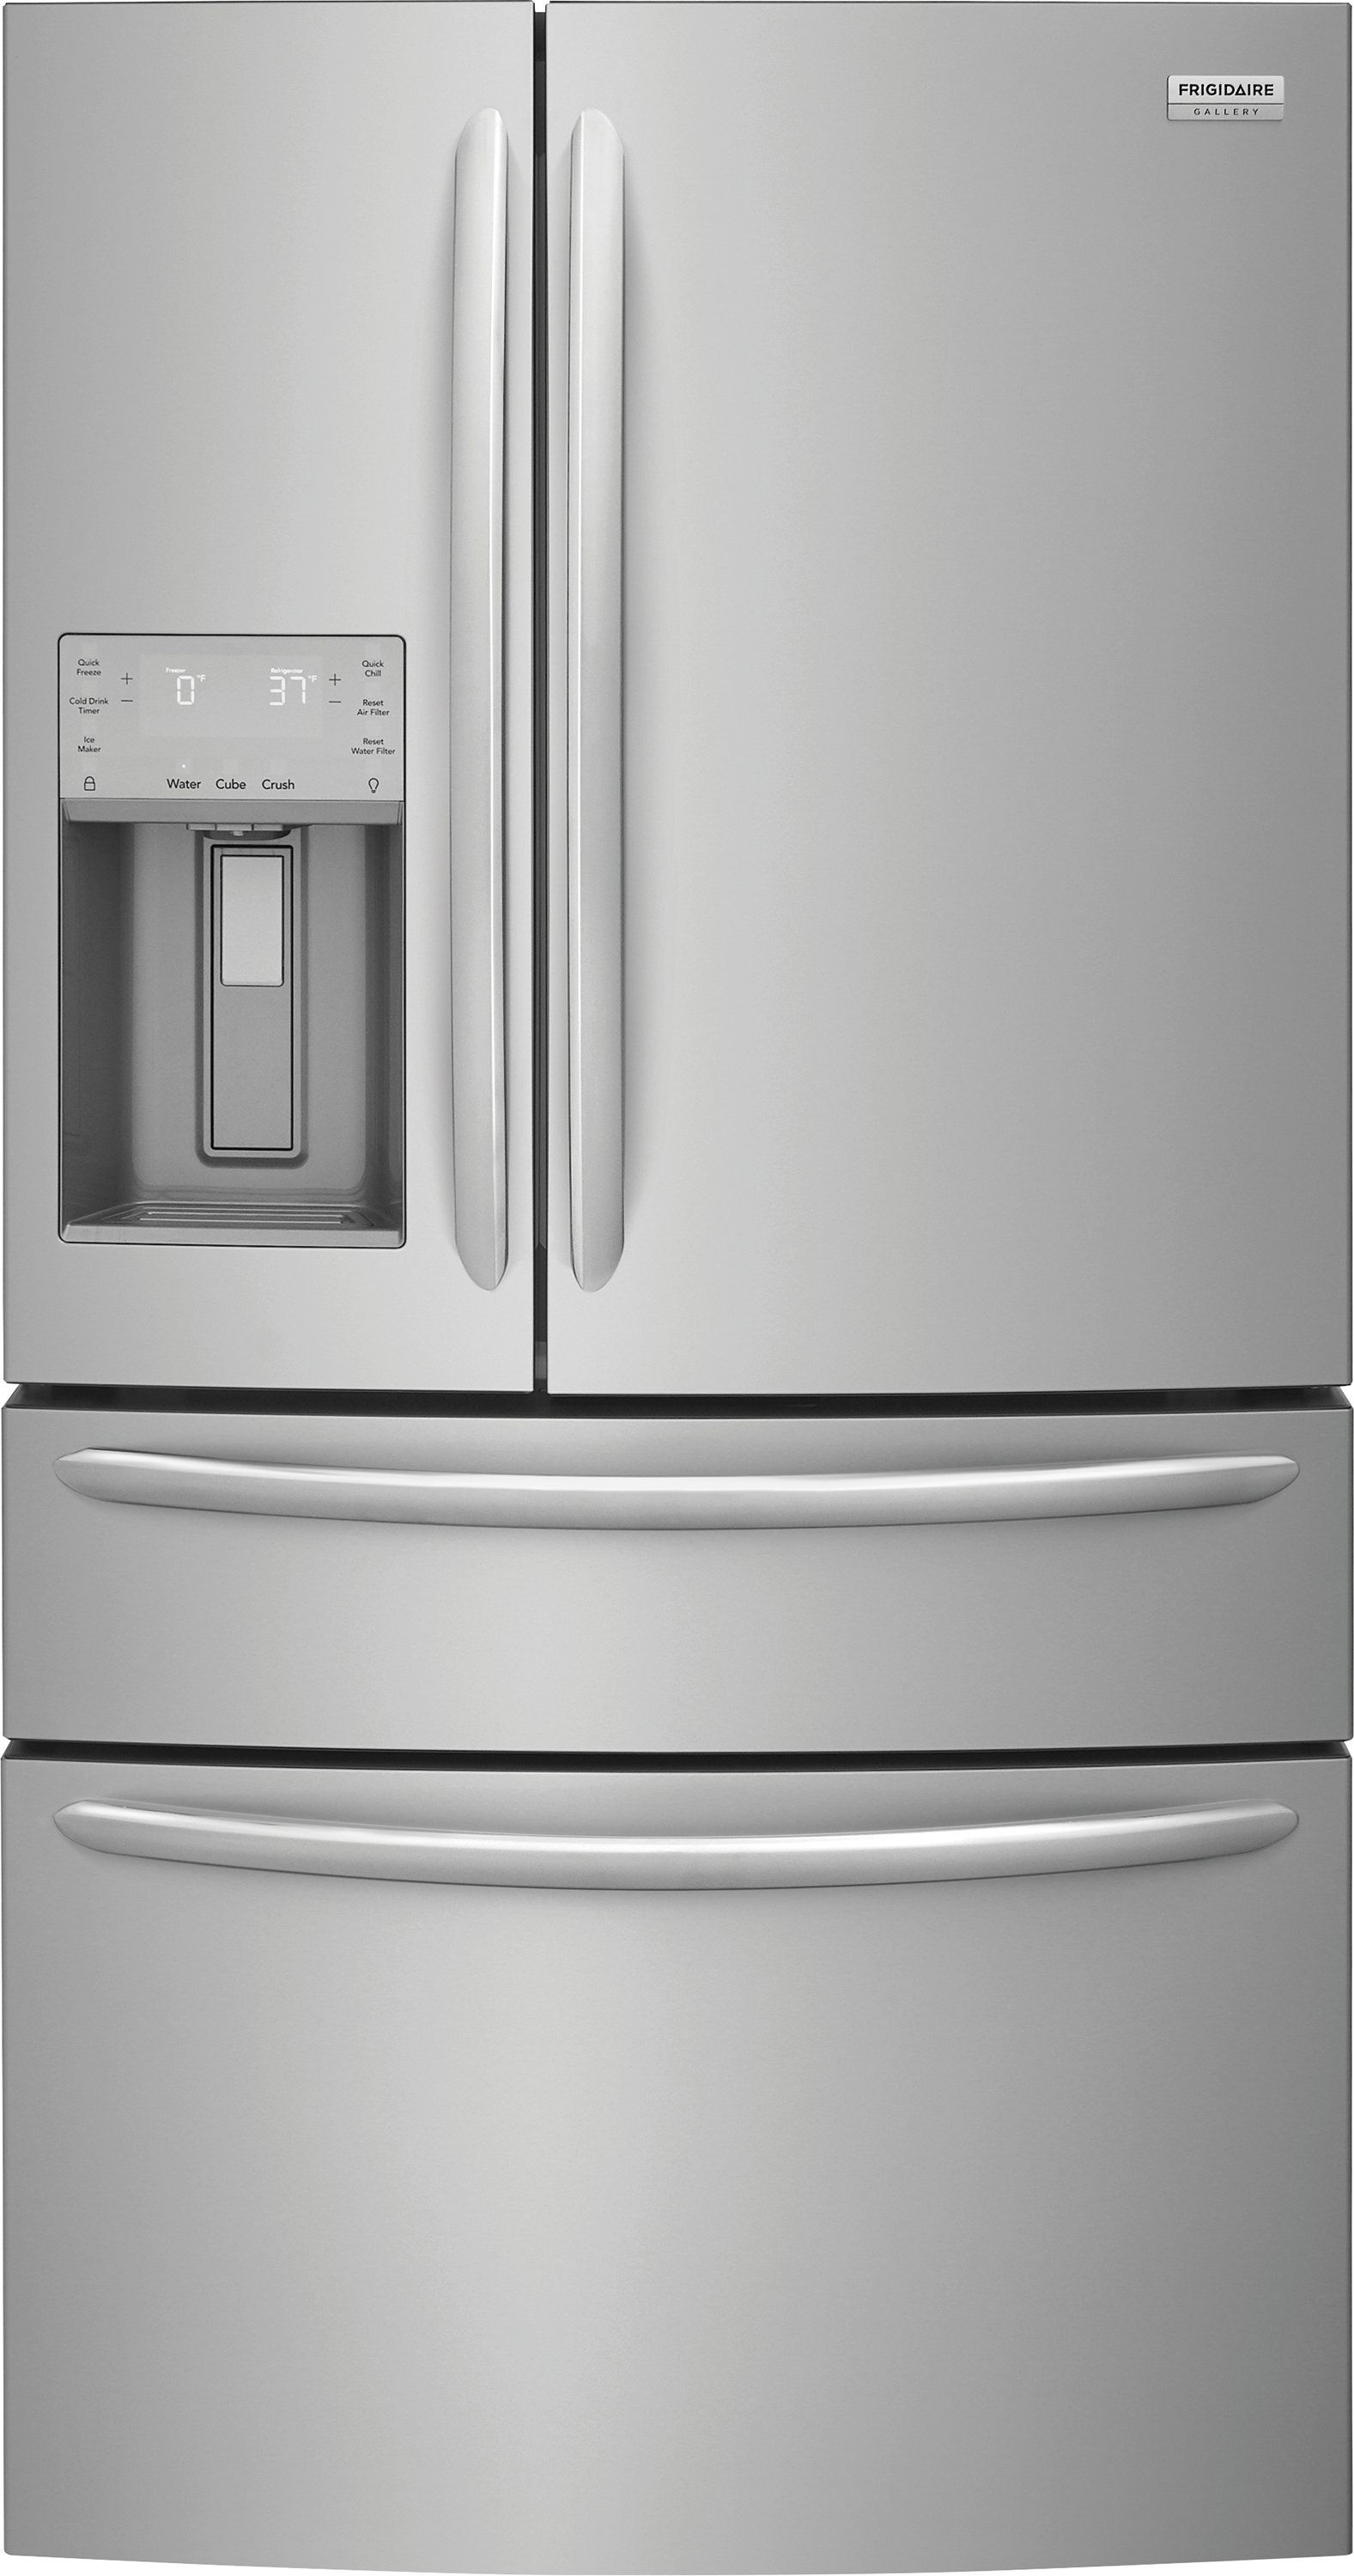 Frigidaire Gallery Counter Depth French Door Refrigerator 21 8 Cu Ft 36 Inch Stainless Steel In 2020 French Door Refrigerator Kitchen Appliance Packages Counter Depth Refrigerator